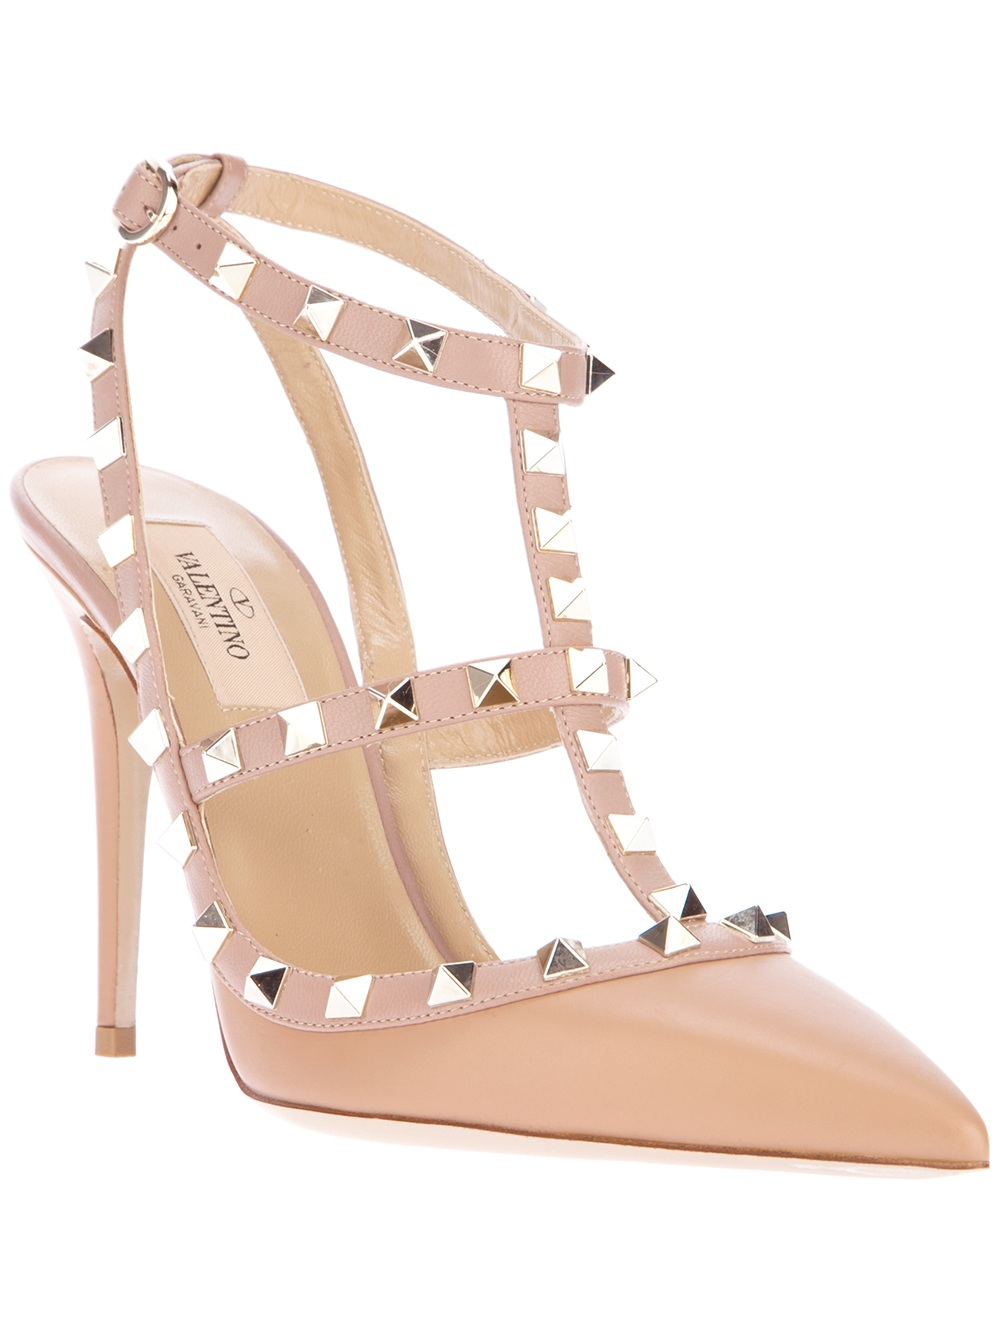 462909a9e2f3 Lyst - Valentino Studded Sandal Pump in Natural